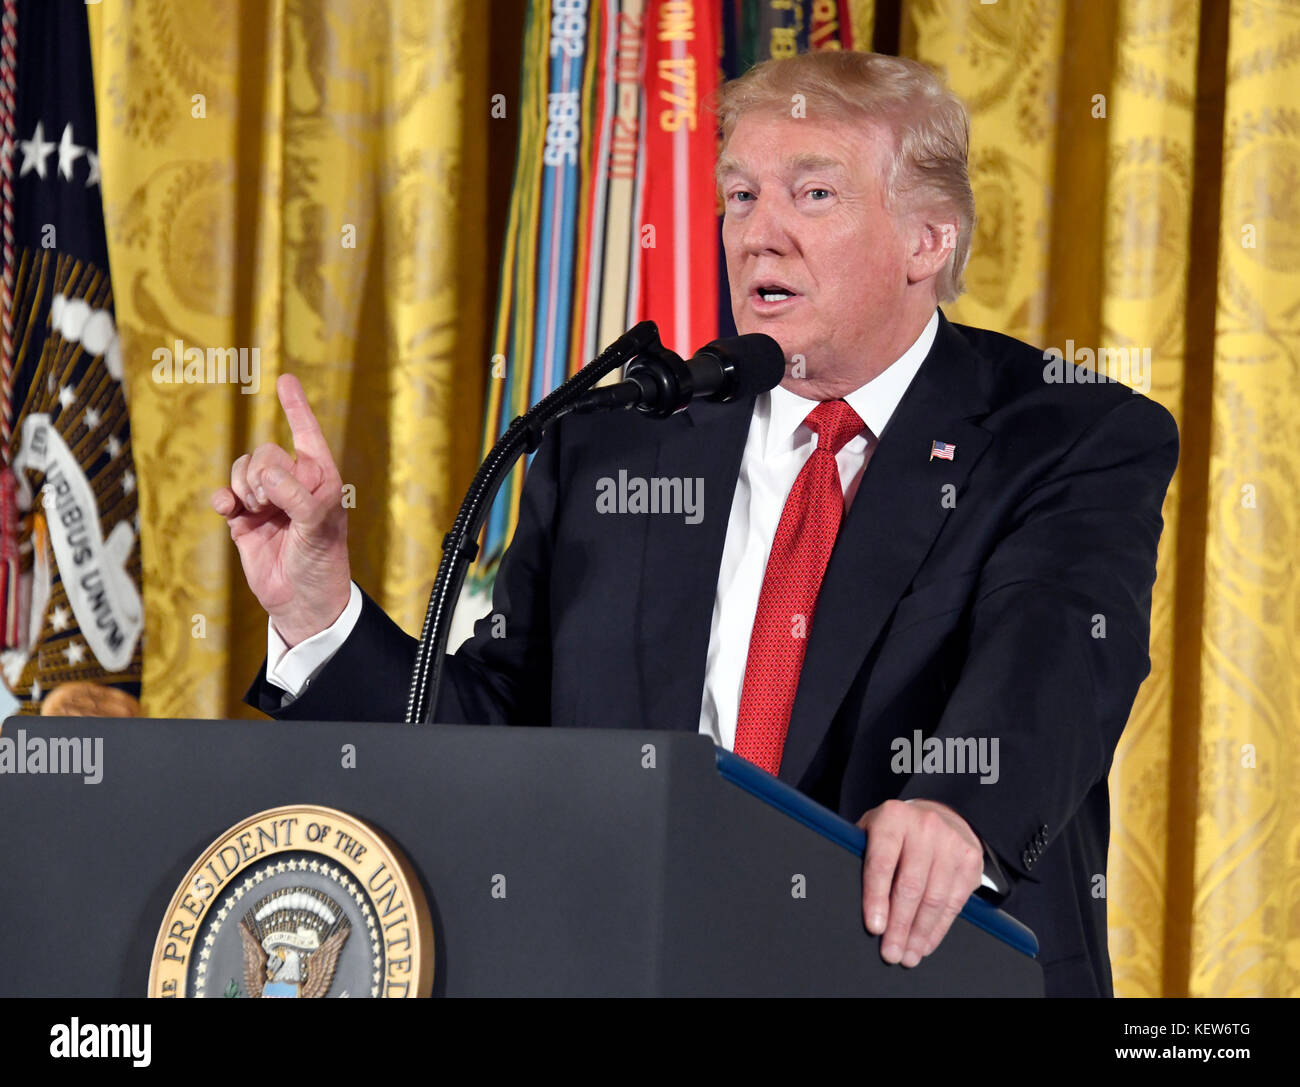 f84600e39 United States President Donald J. Trump makes remarks as he presents the  Medal of Honor